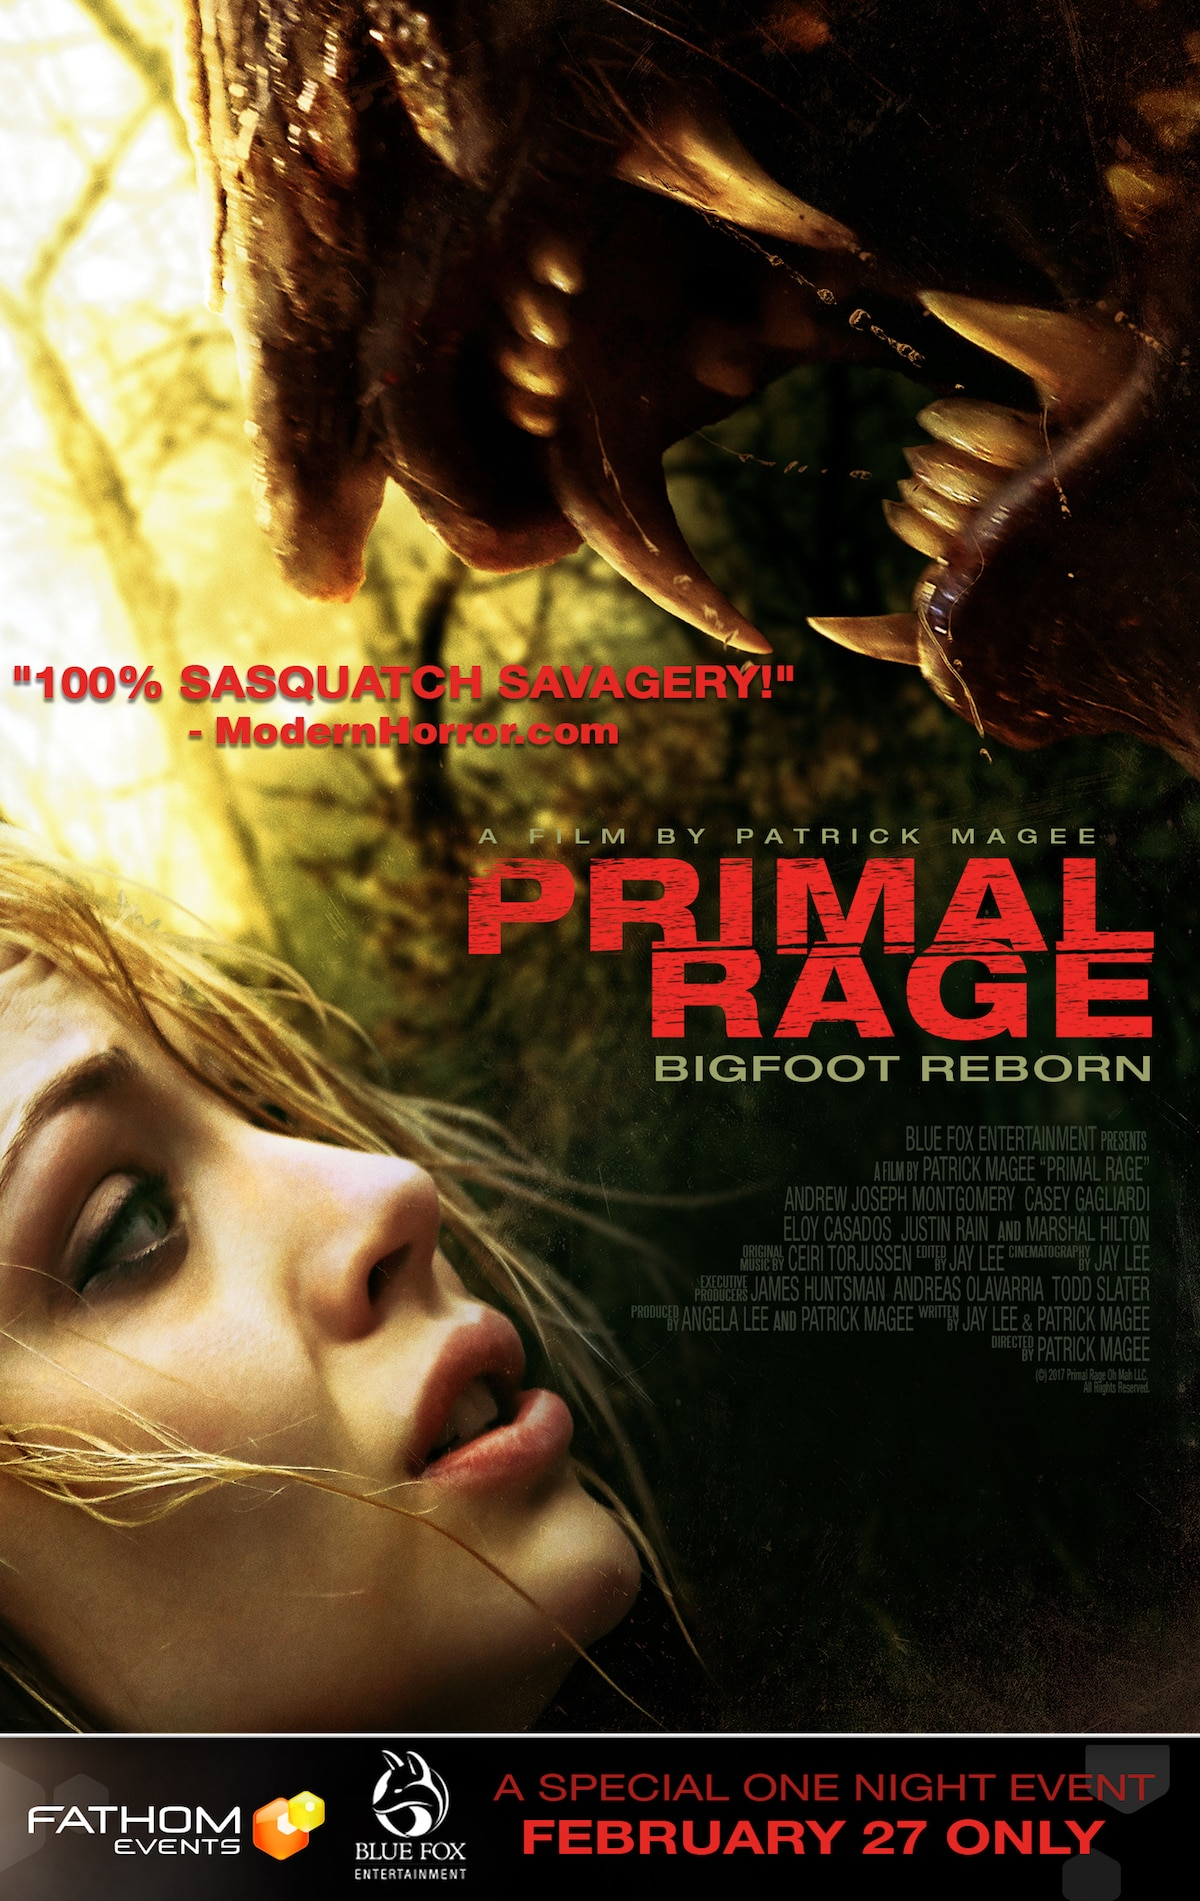 PrimalRage MiniPoster Artwork V3 - Exclusive Clip: Primal Rage - Bigfoot Causes Chaos!